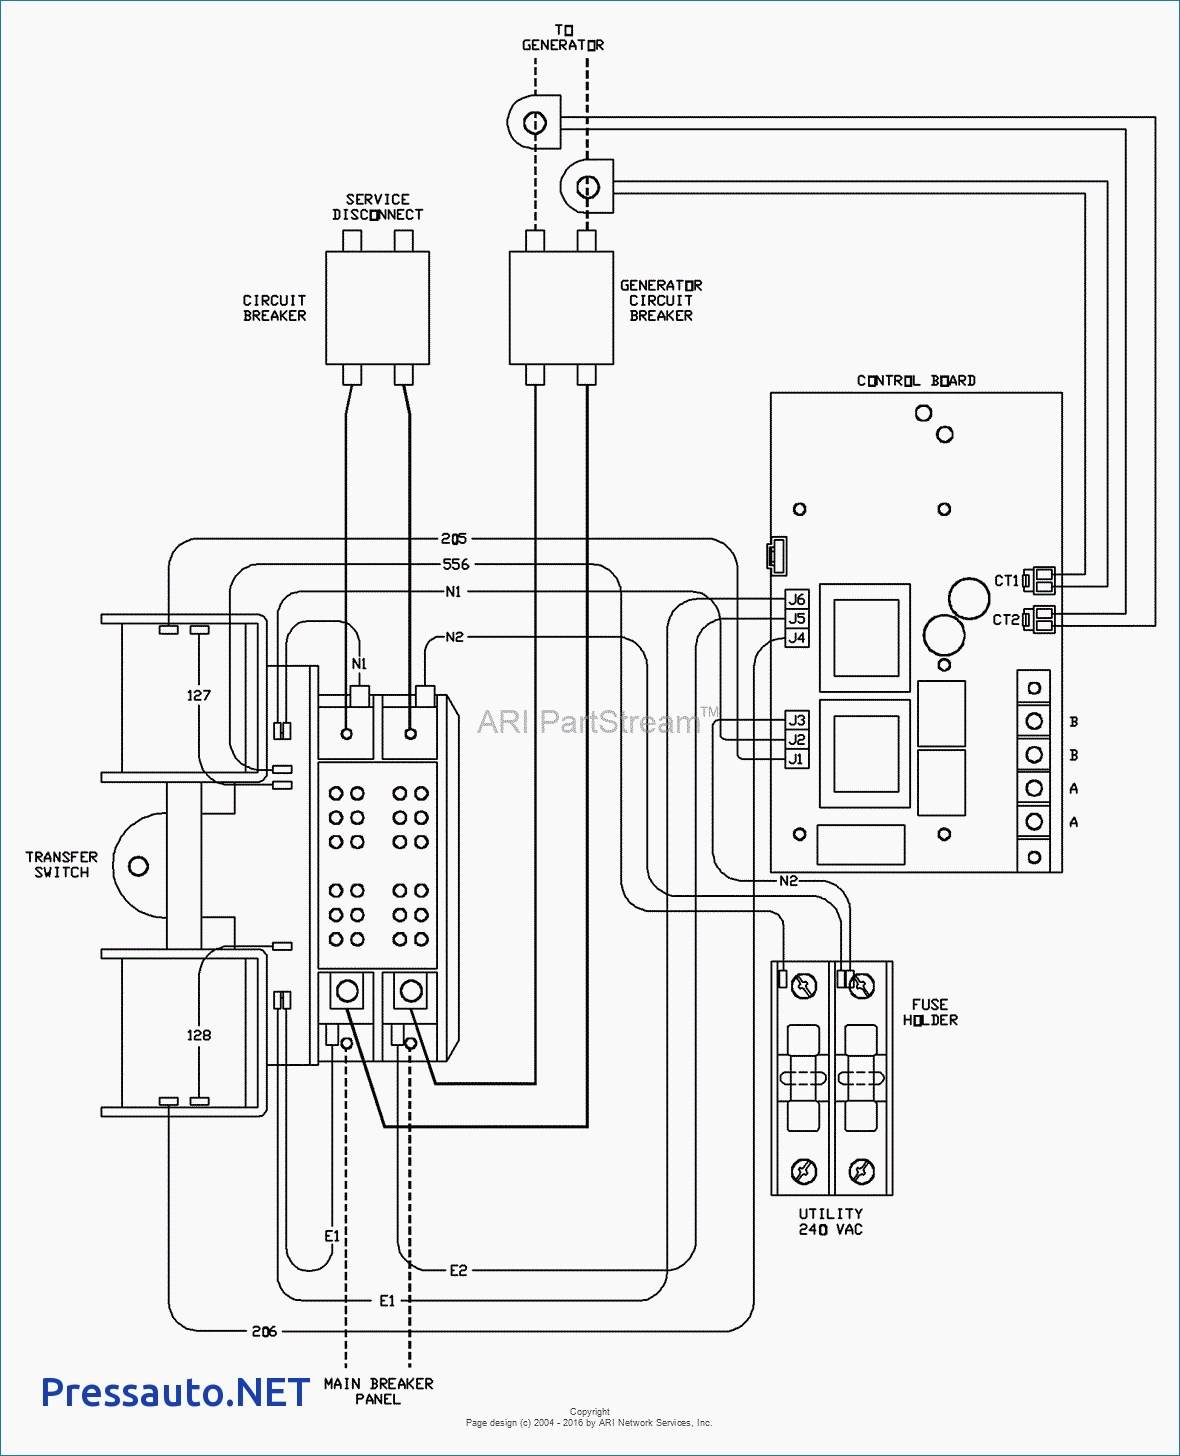 manual transfer switch wiring diagram Download-Whole House Transfer Switch Wiring Diagram Beautiful Generator Manual Transfer Switch Wiring Diagram 17-n